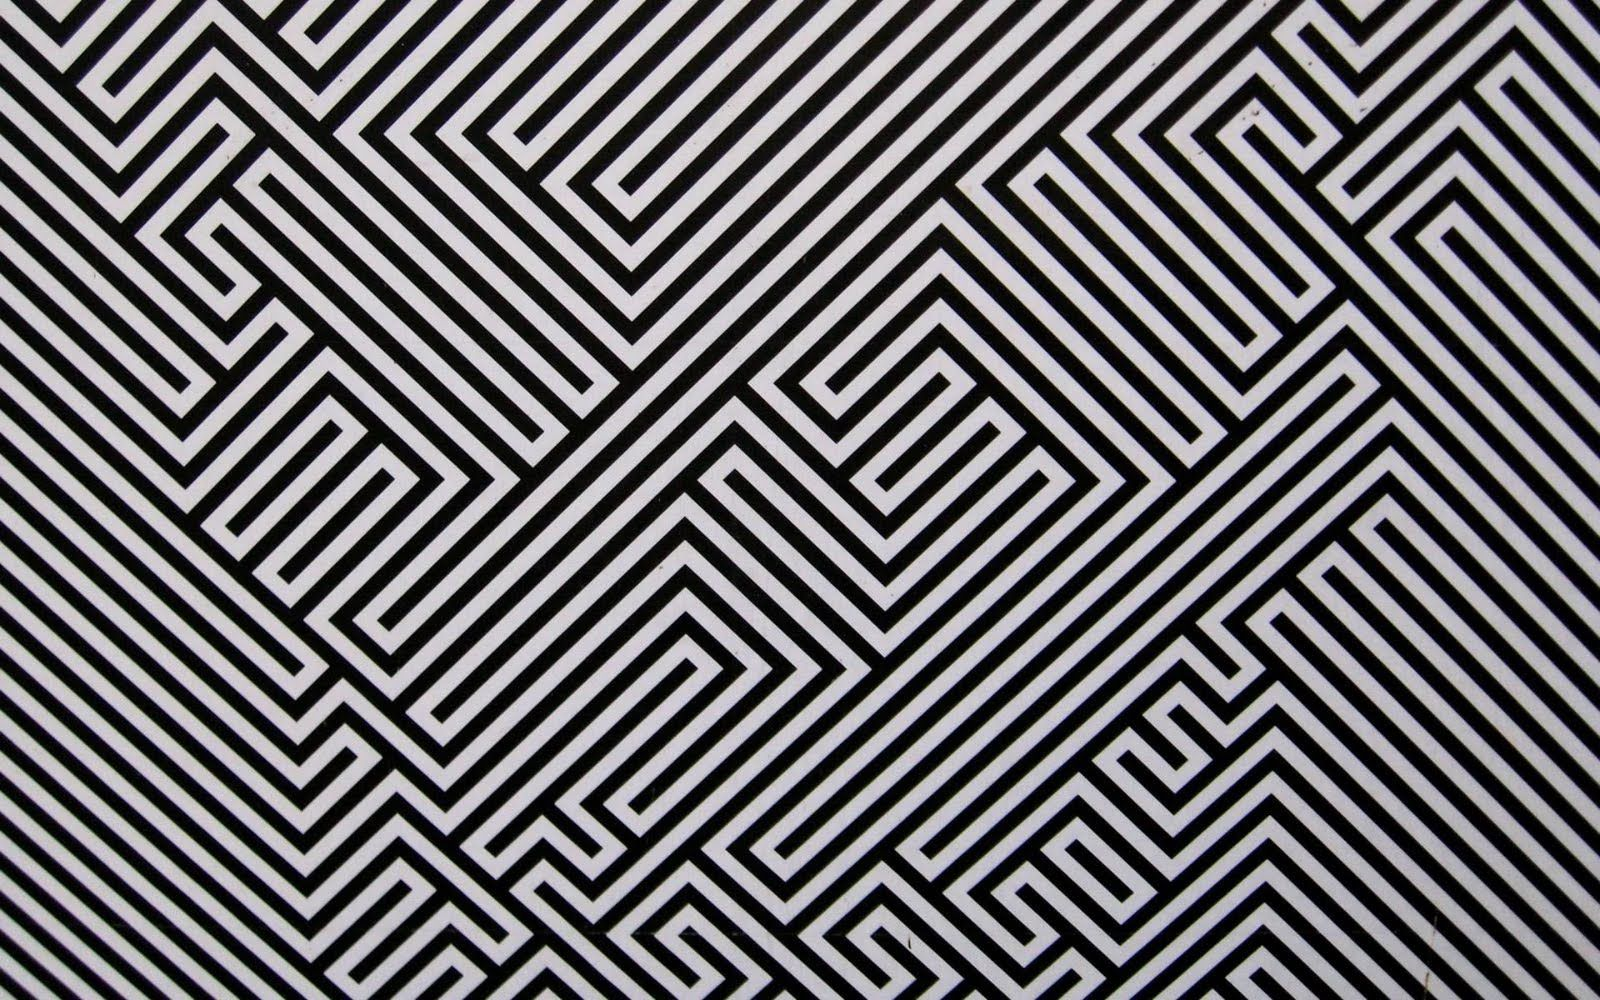 Hd wallpaper pattern - Abstract Pattern